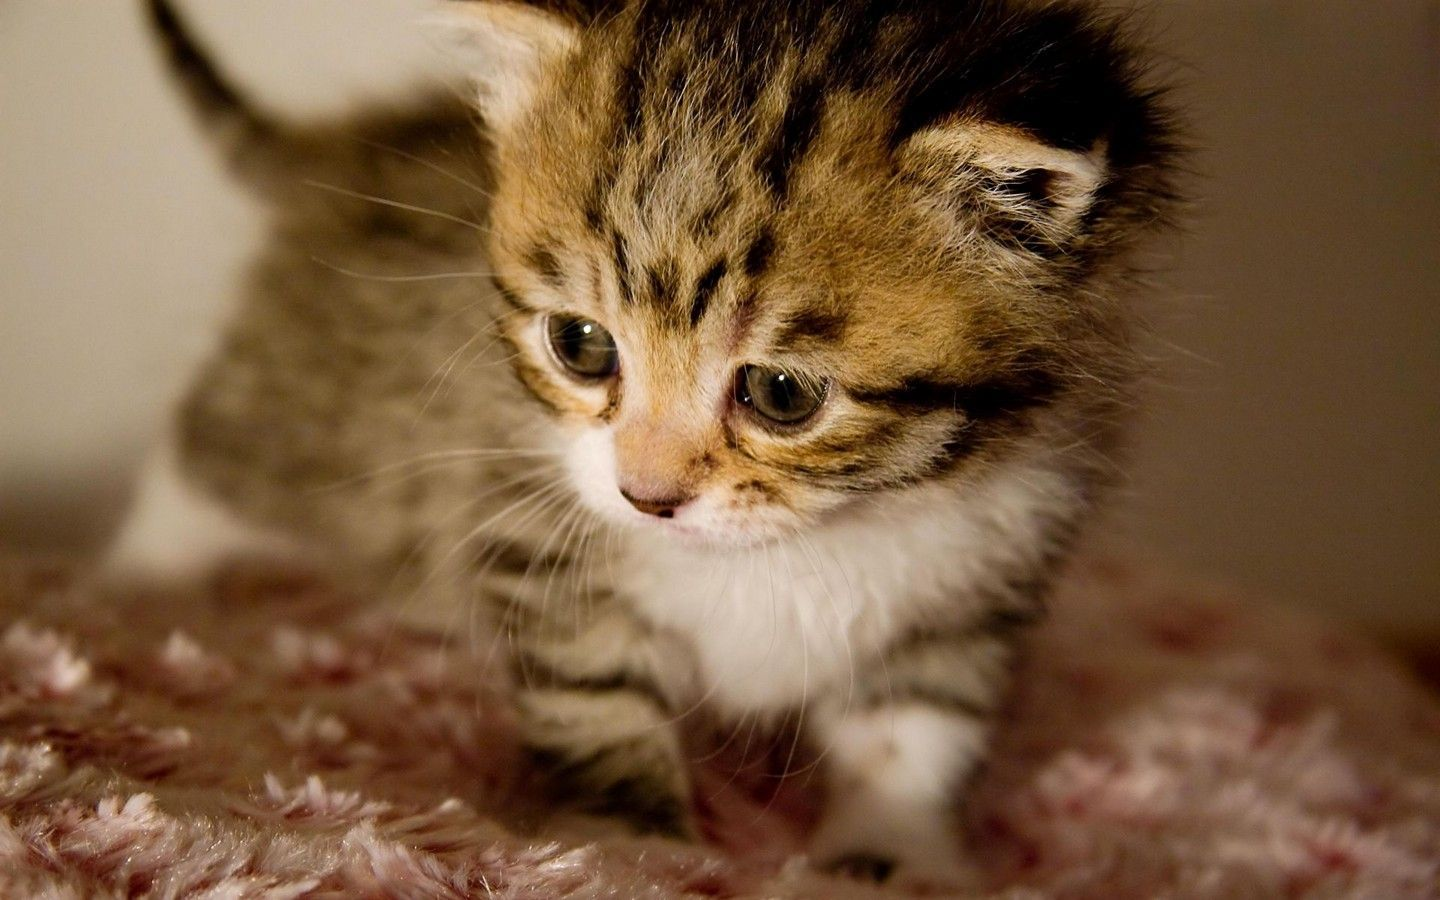 Are Cats Ticklish If So Where Is The Place That Makes The Cat Ticklish Kittens Cutest Kitten Images Kittens Cutest Baby